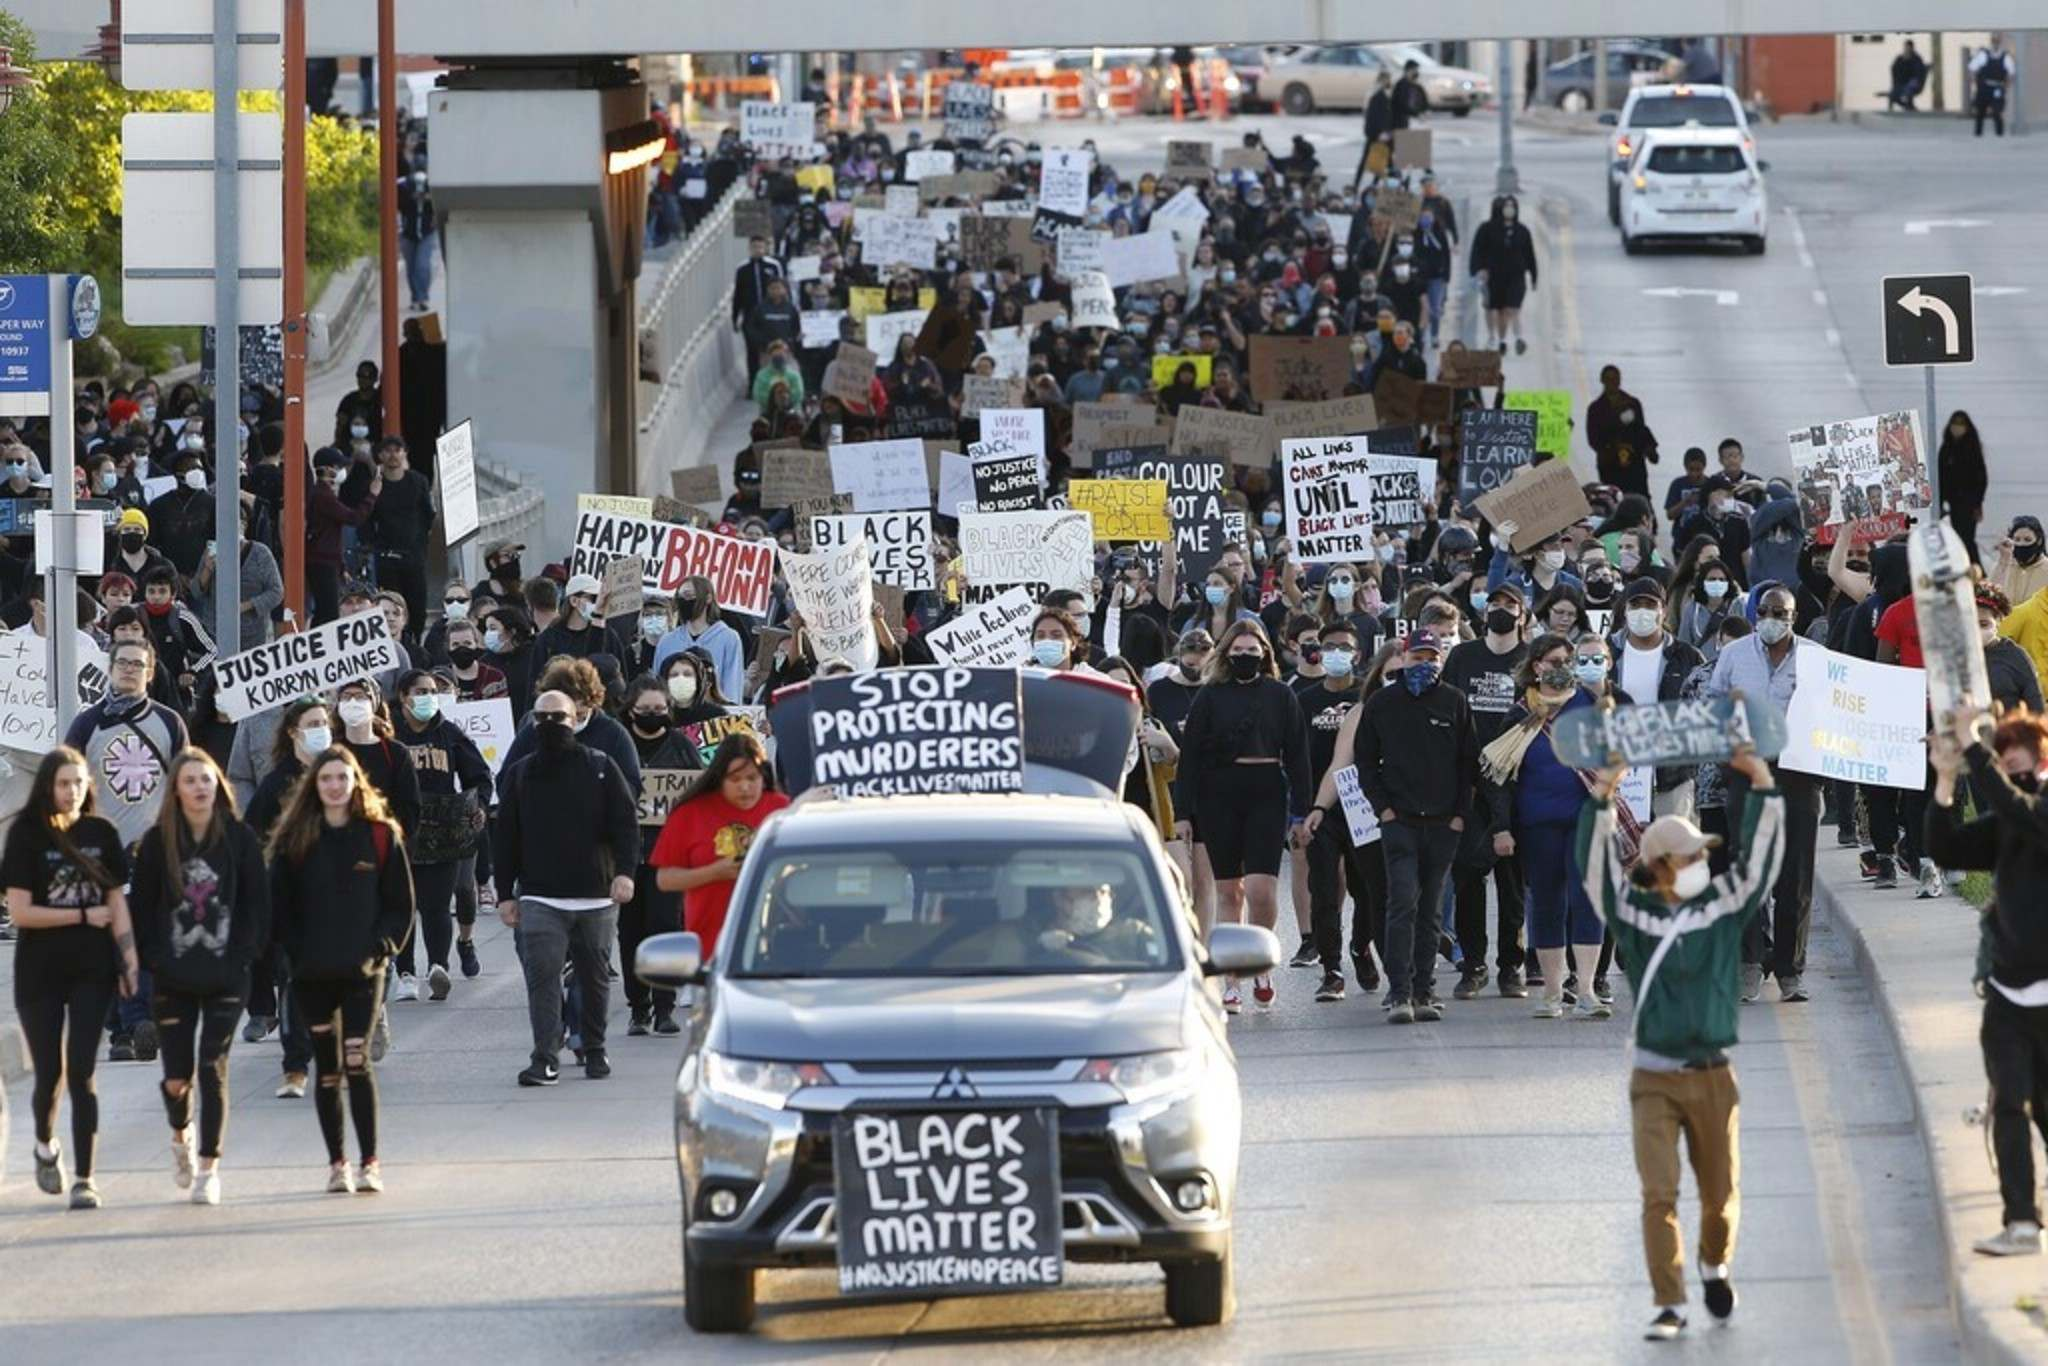 John Woods / THE CANADIAN PRESS FILES</p><p>People march in solidarity with the George Floyd protests across the United States in Winnipeg in June. A recent survey found that 72 per cent of Manitobans feel the protests in Canada are justified.</p>